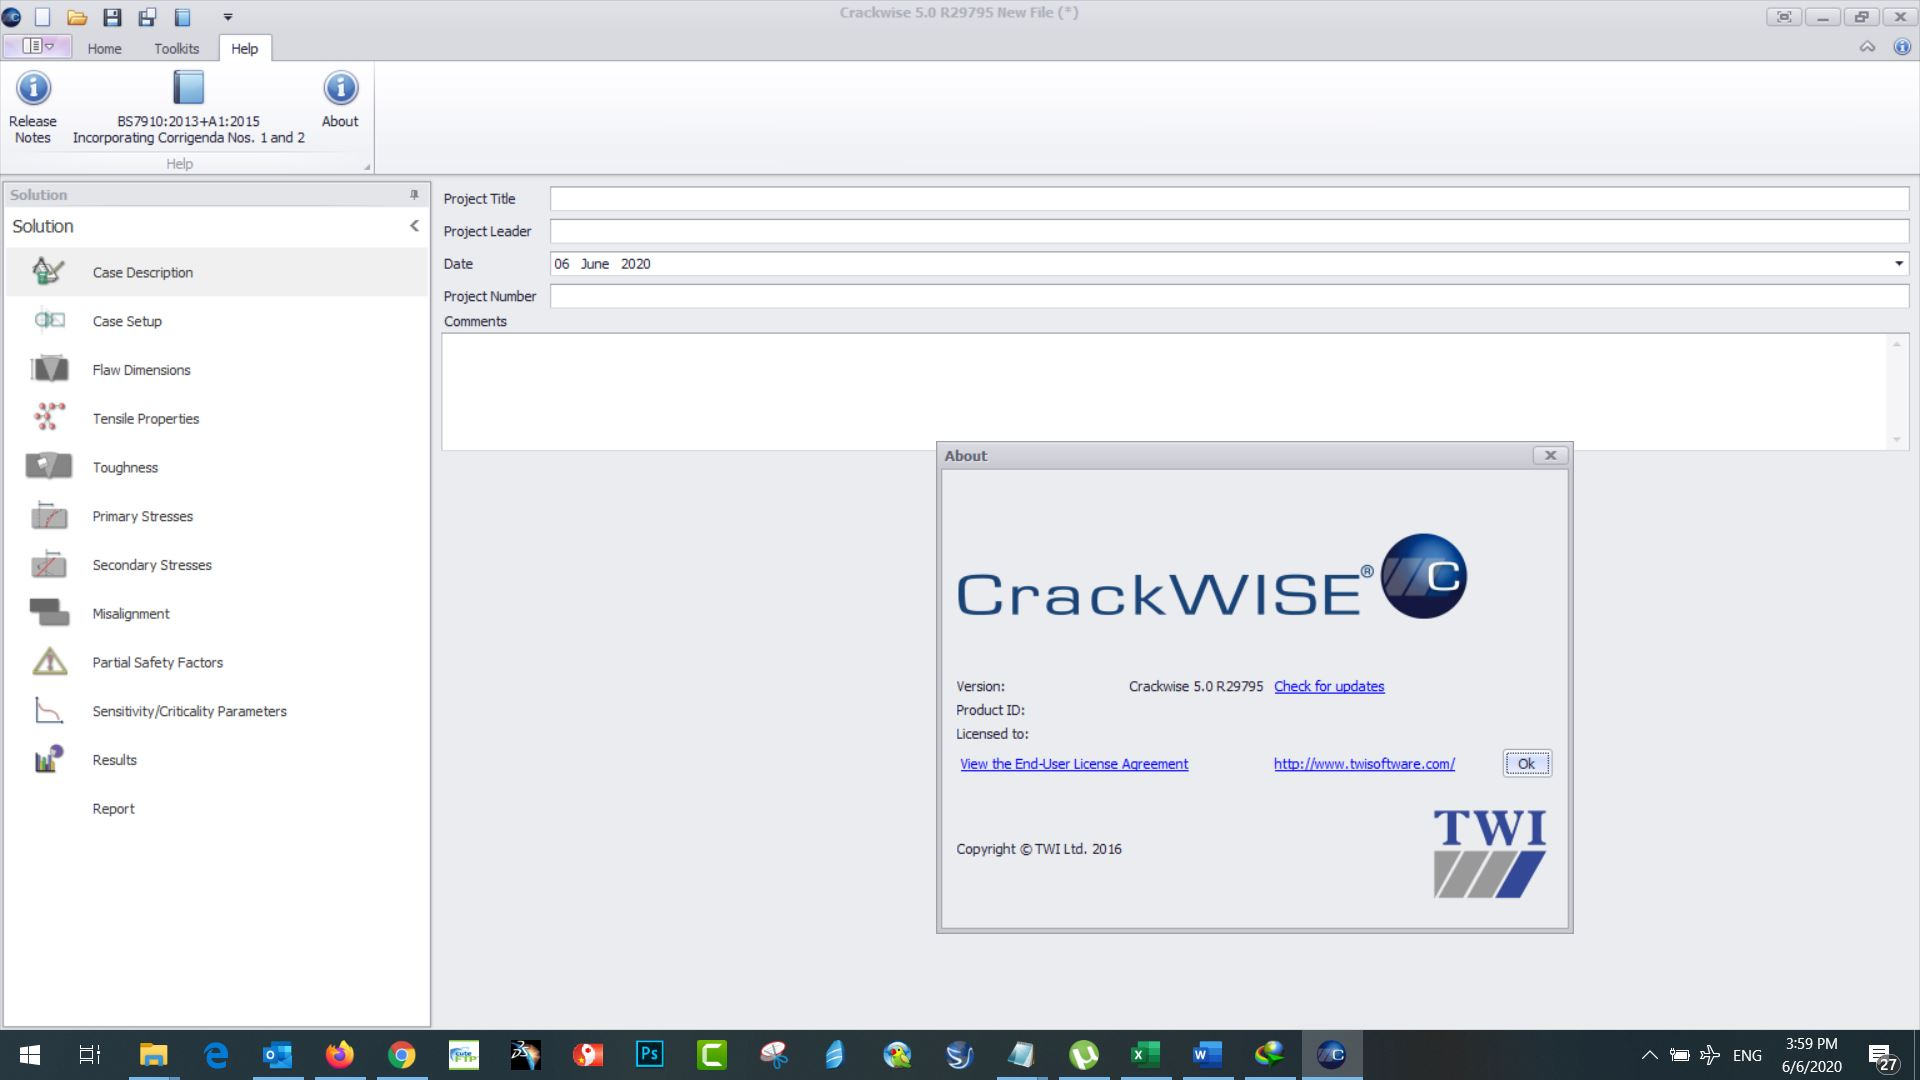 Working with TWI CrackWise 5.0 R29795 full license